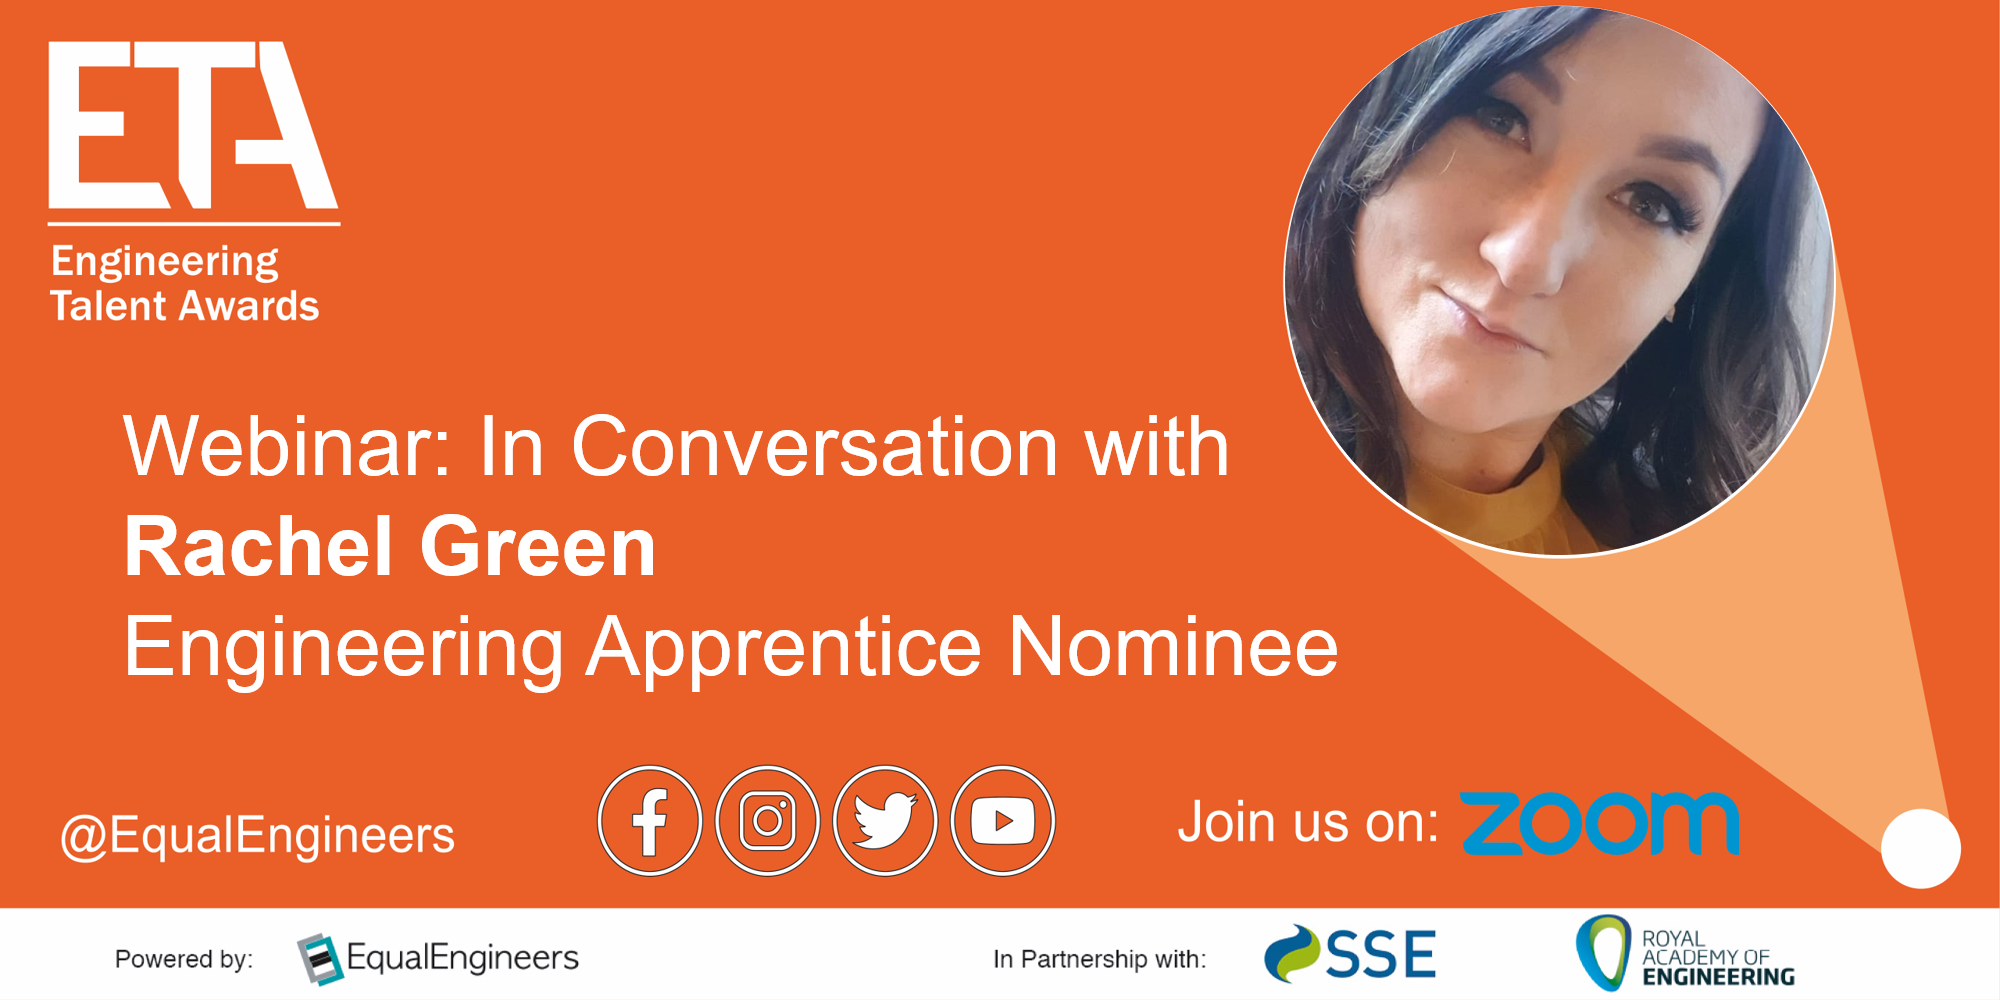 engineering-apprentice-nominee-rachel-green